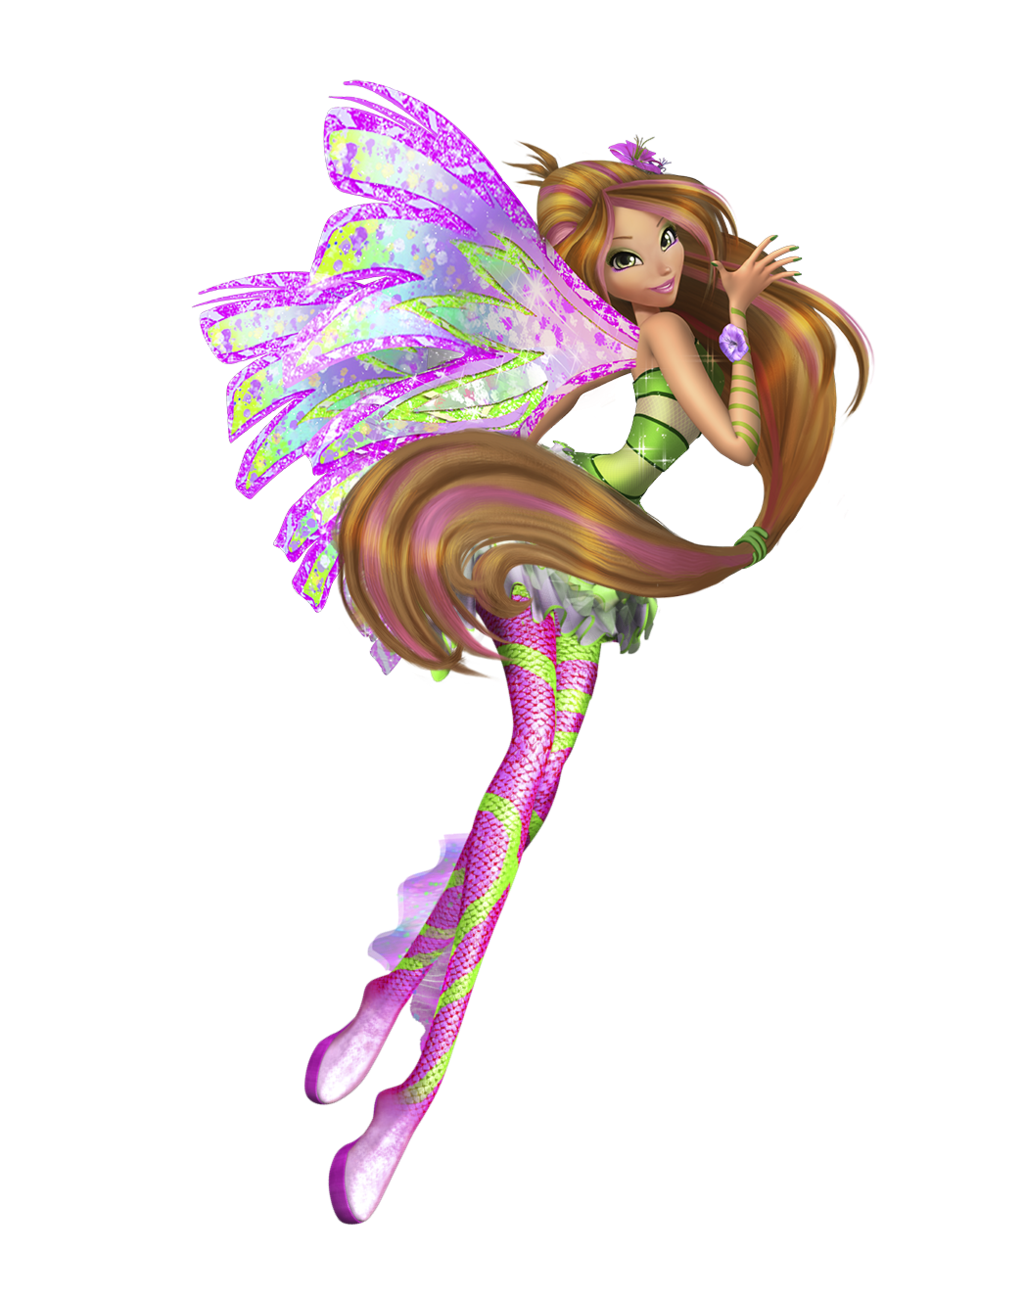 Winx Club Fairies: Flora's Sirenix in 3D